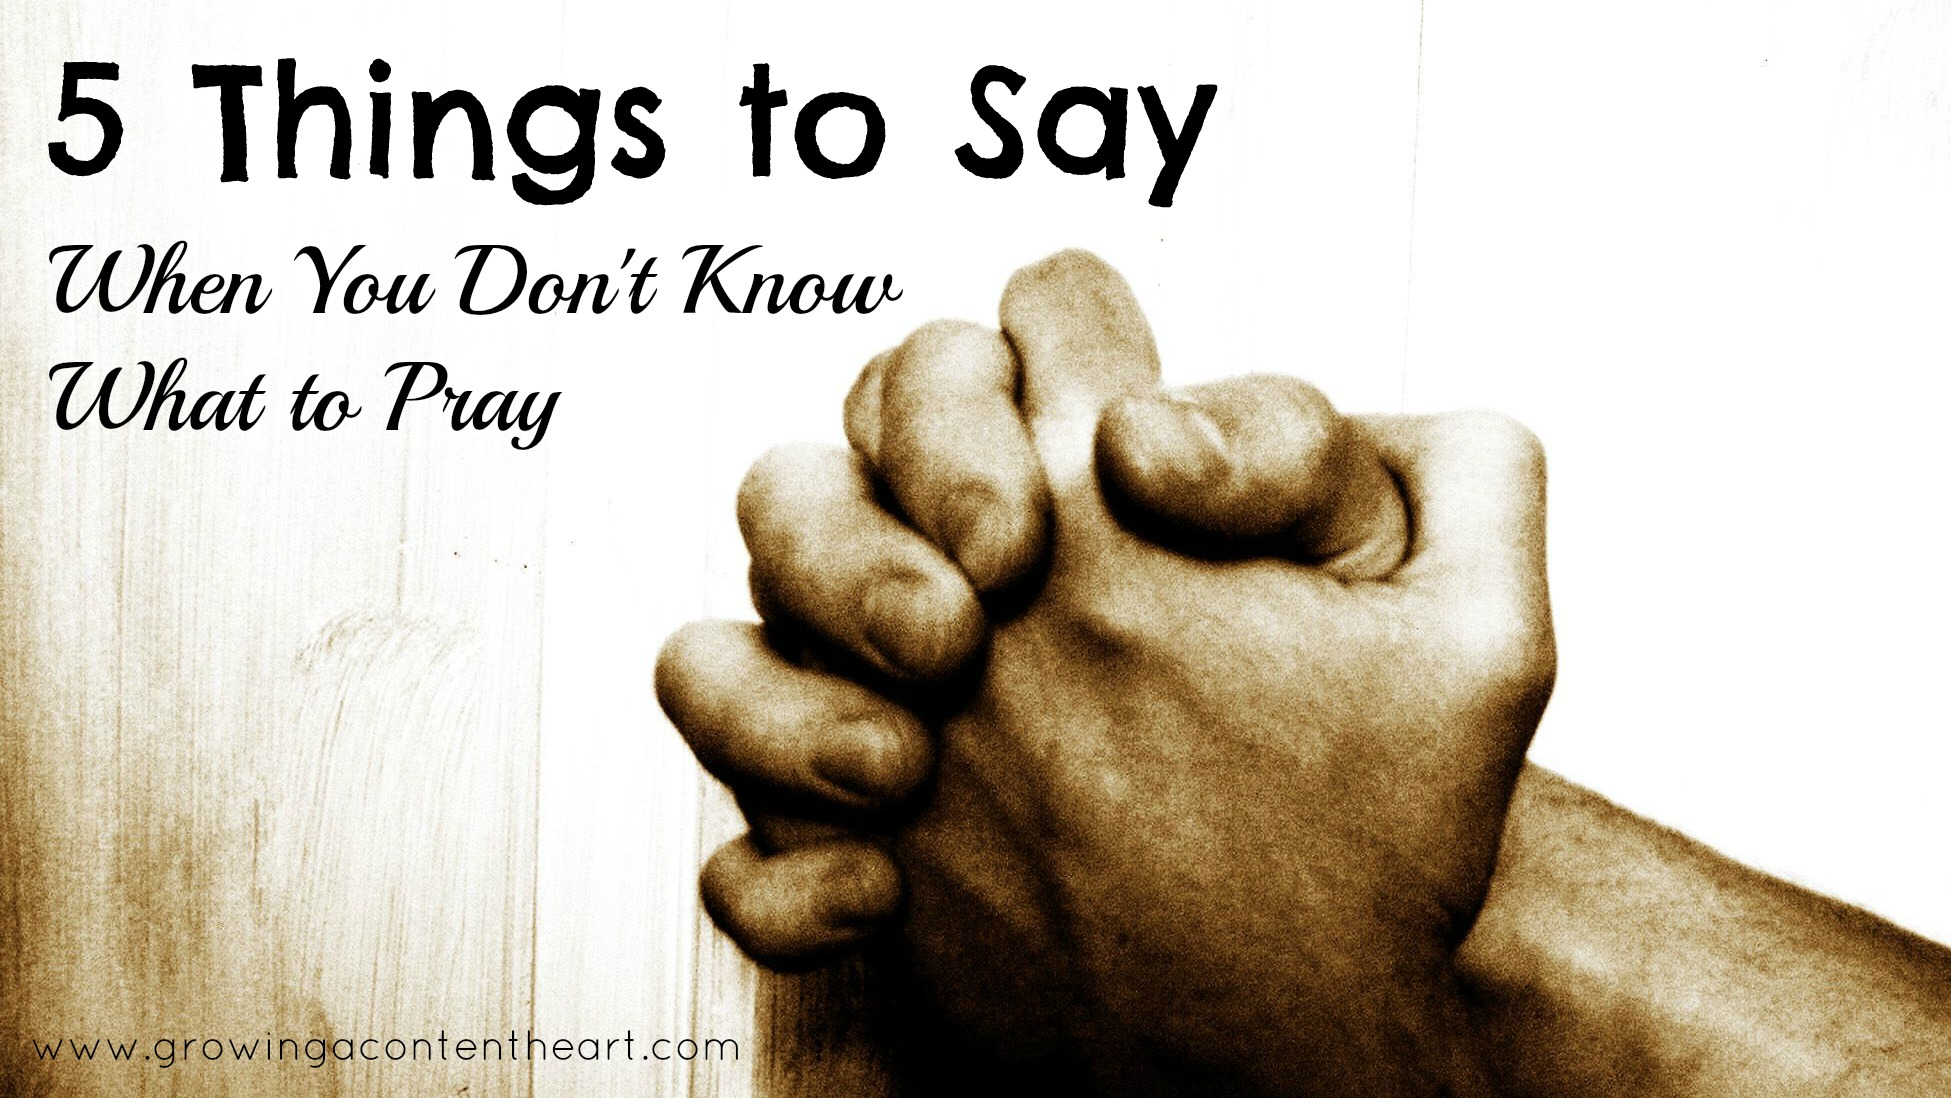 5 Things to Say When You Don't Know What to Pray